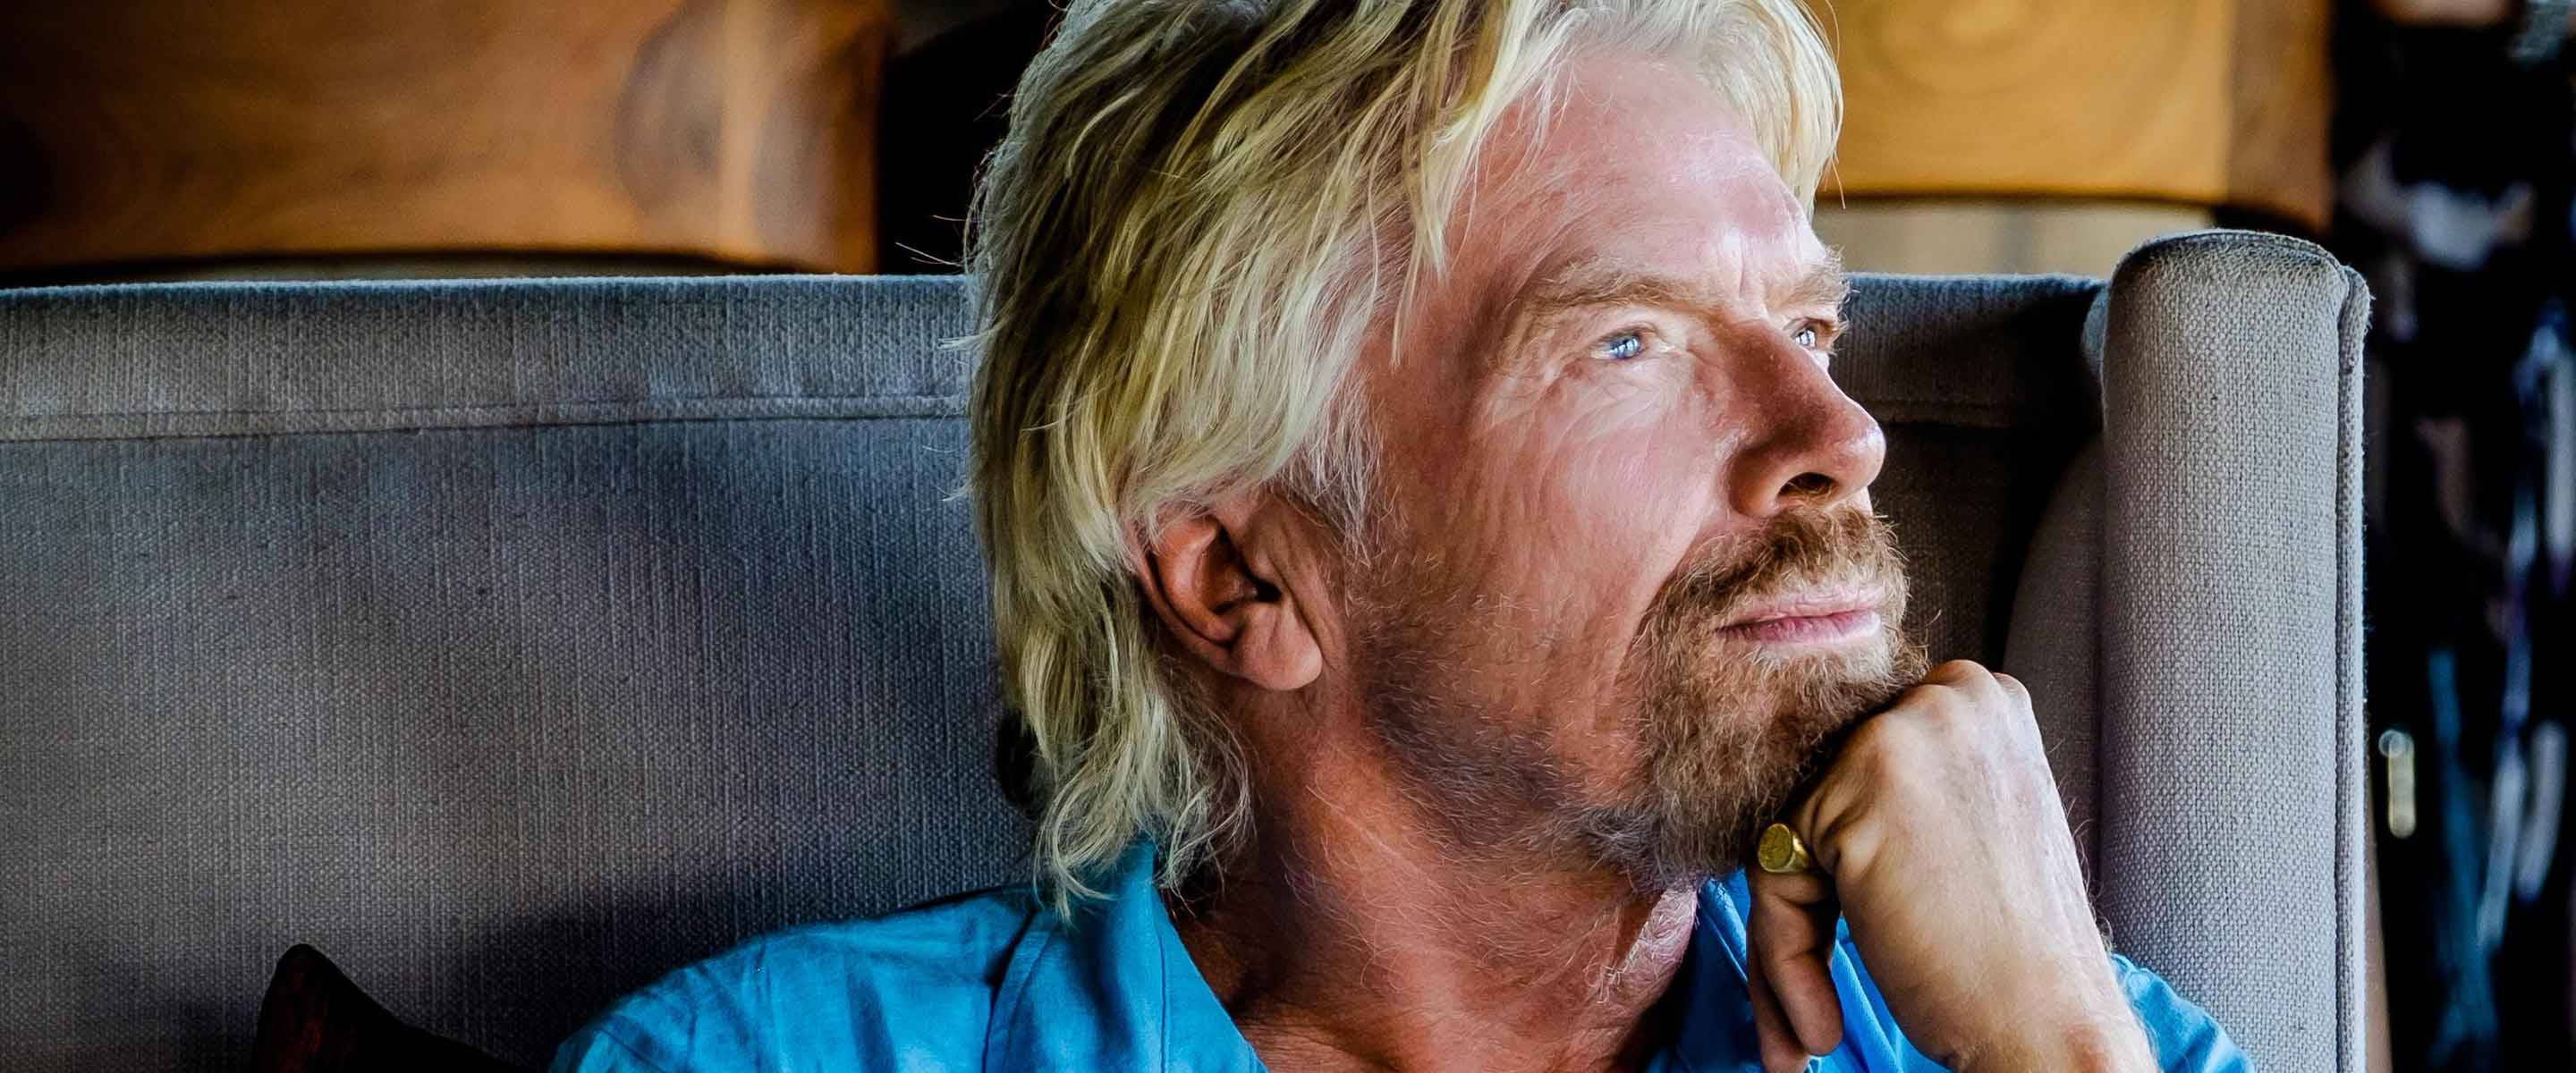 Richard Branson looking to the left with his chin rested on his hand